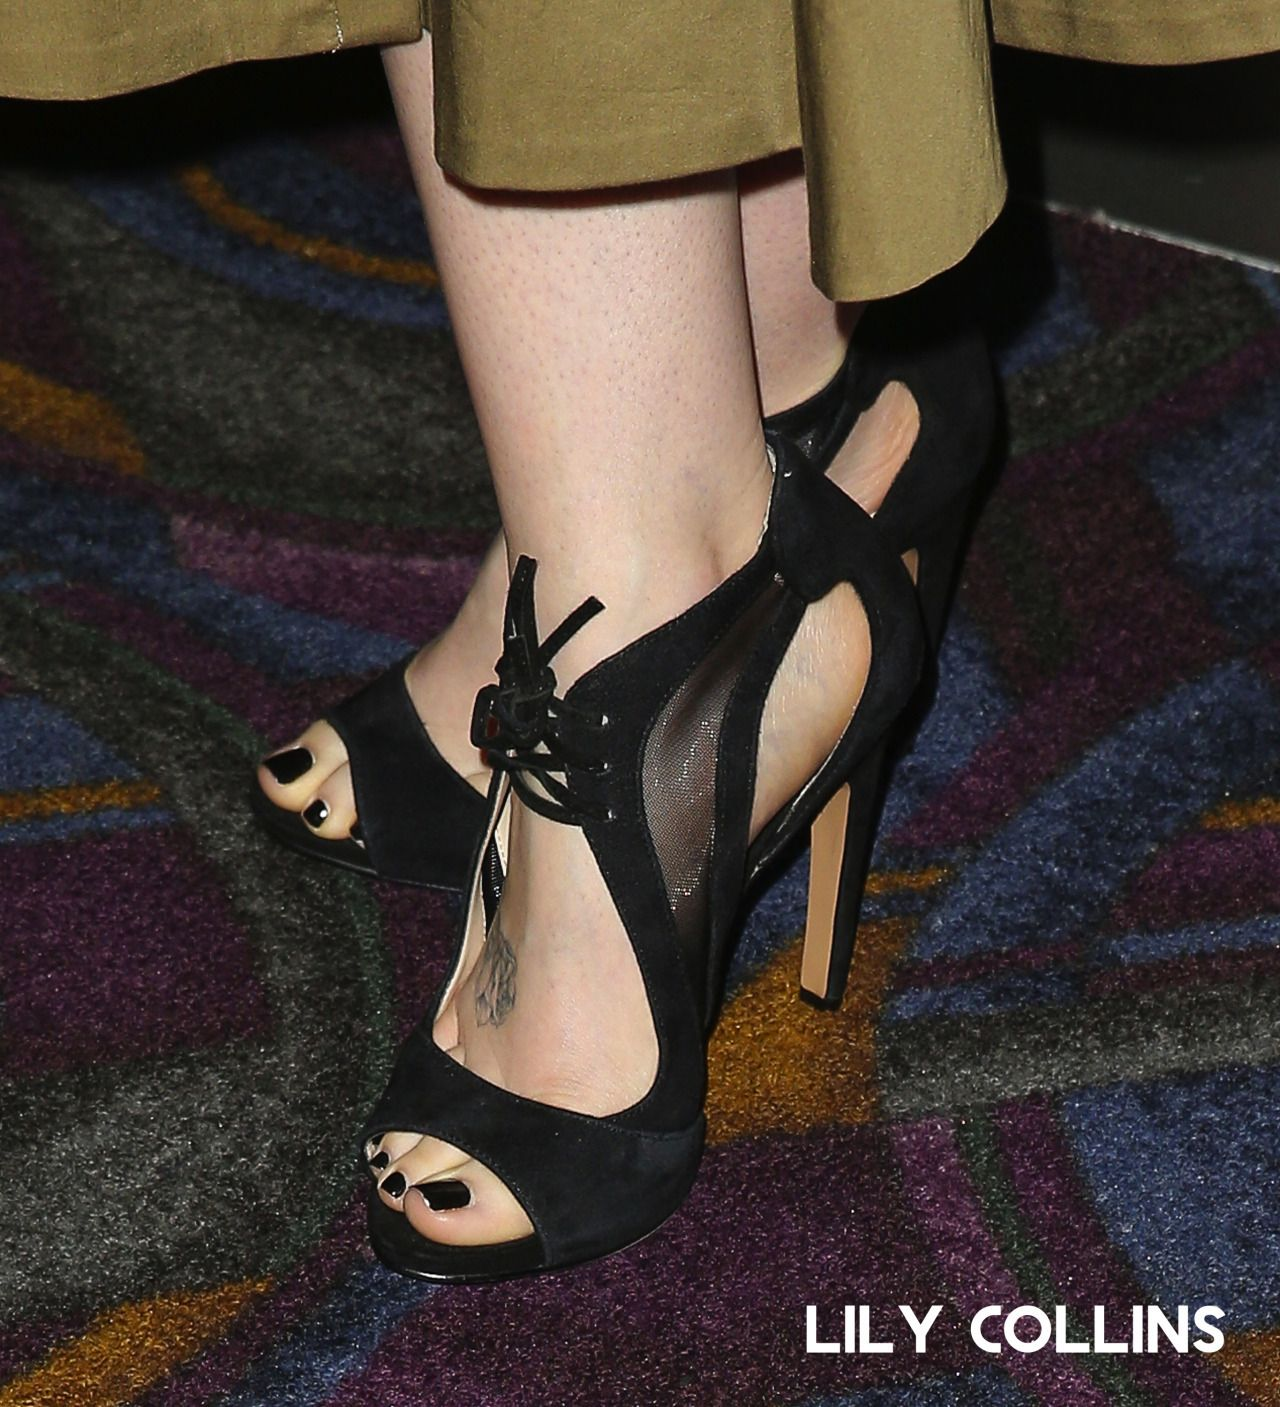 Actrices Porno Feet Top lily collins feet www.feet.to/vip | heels, celebrity feet